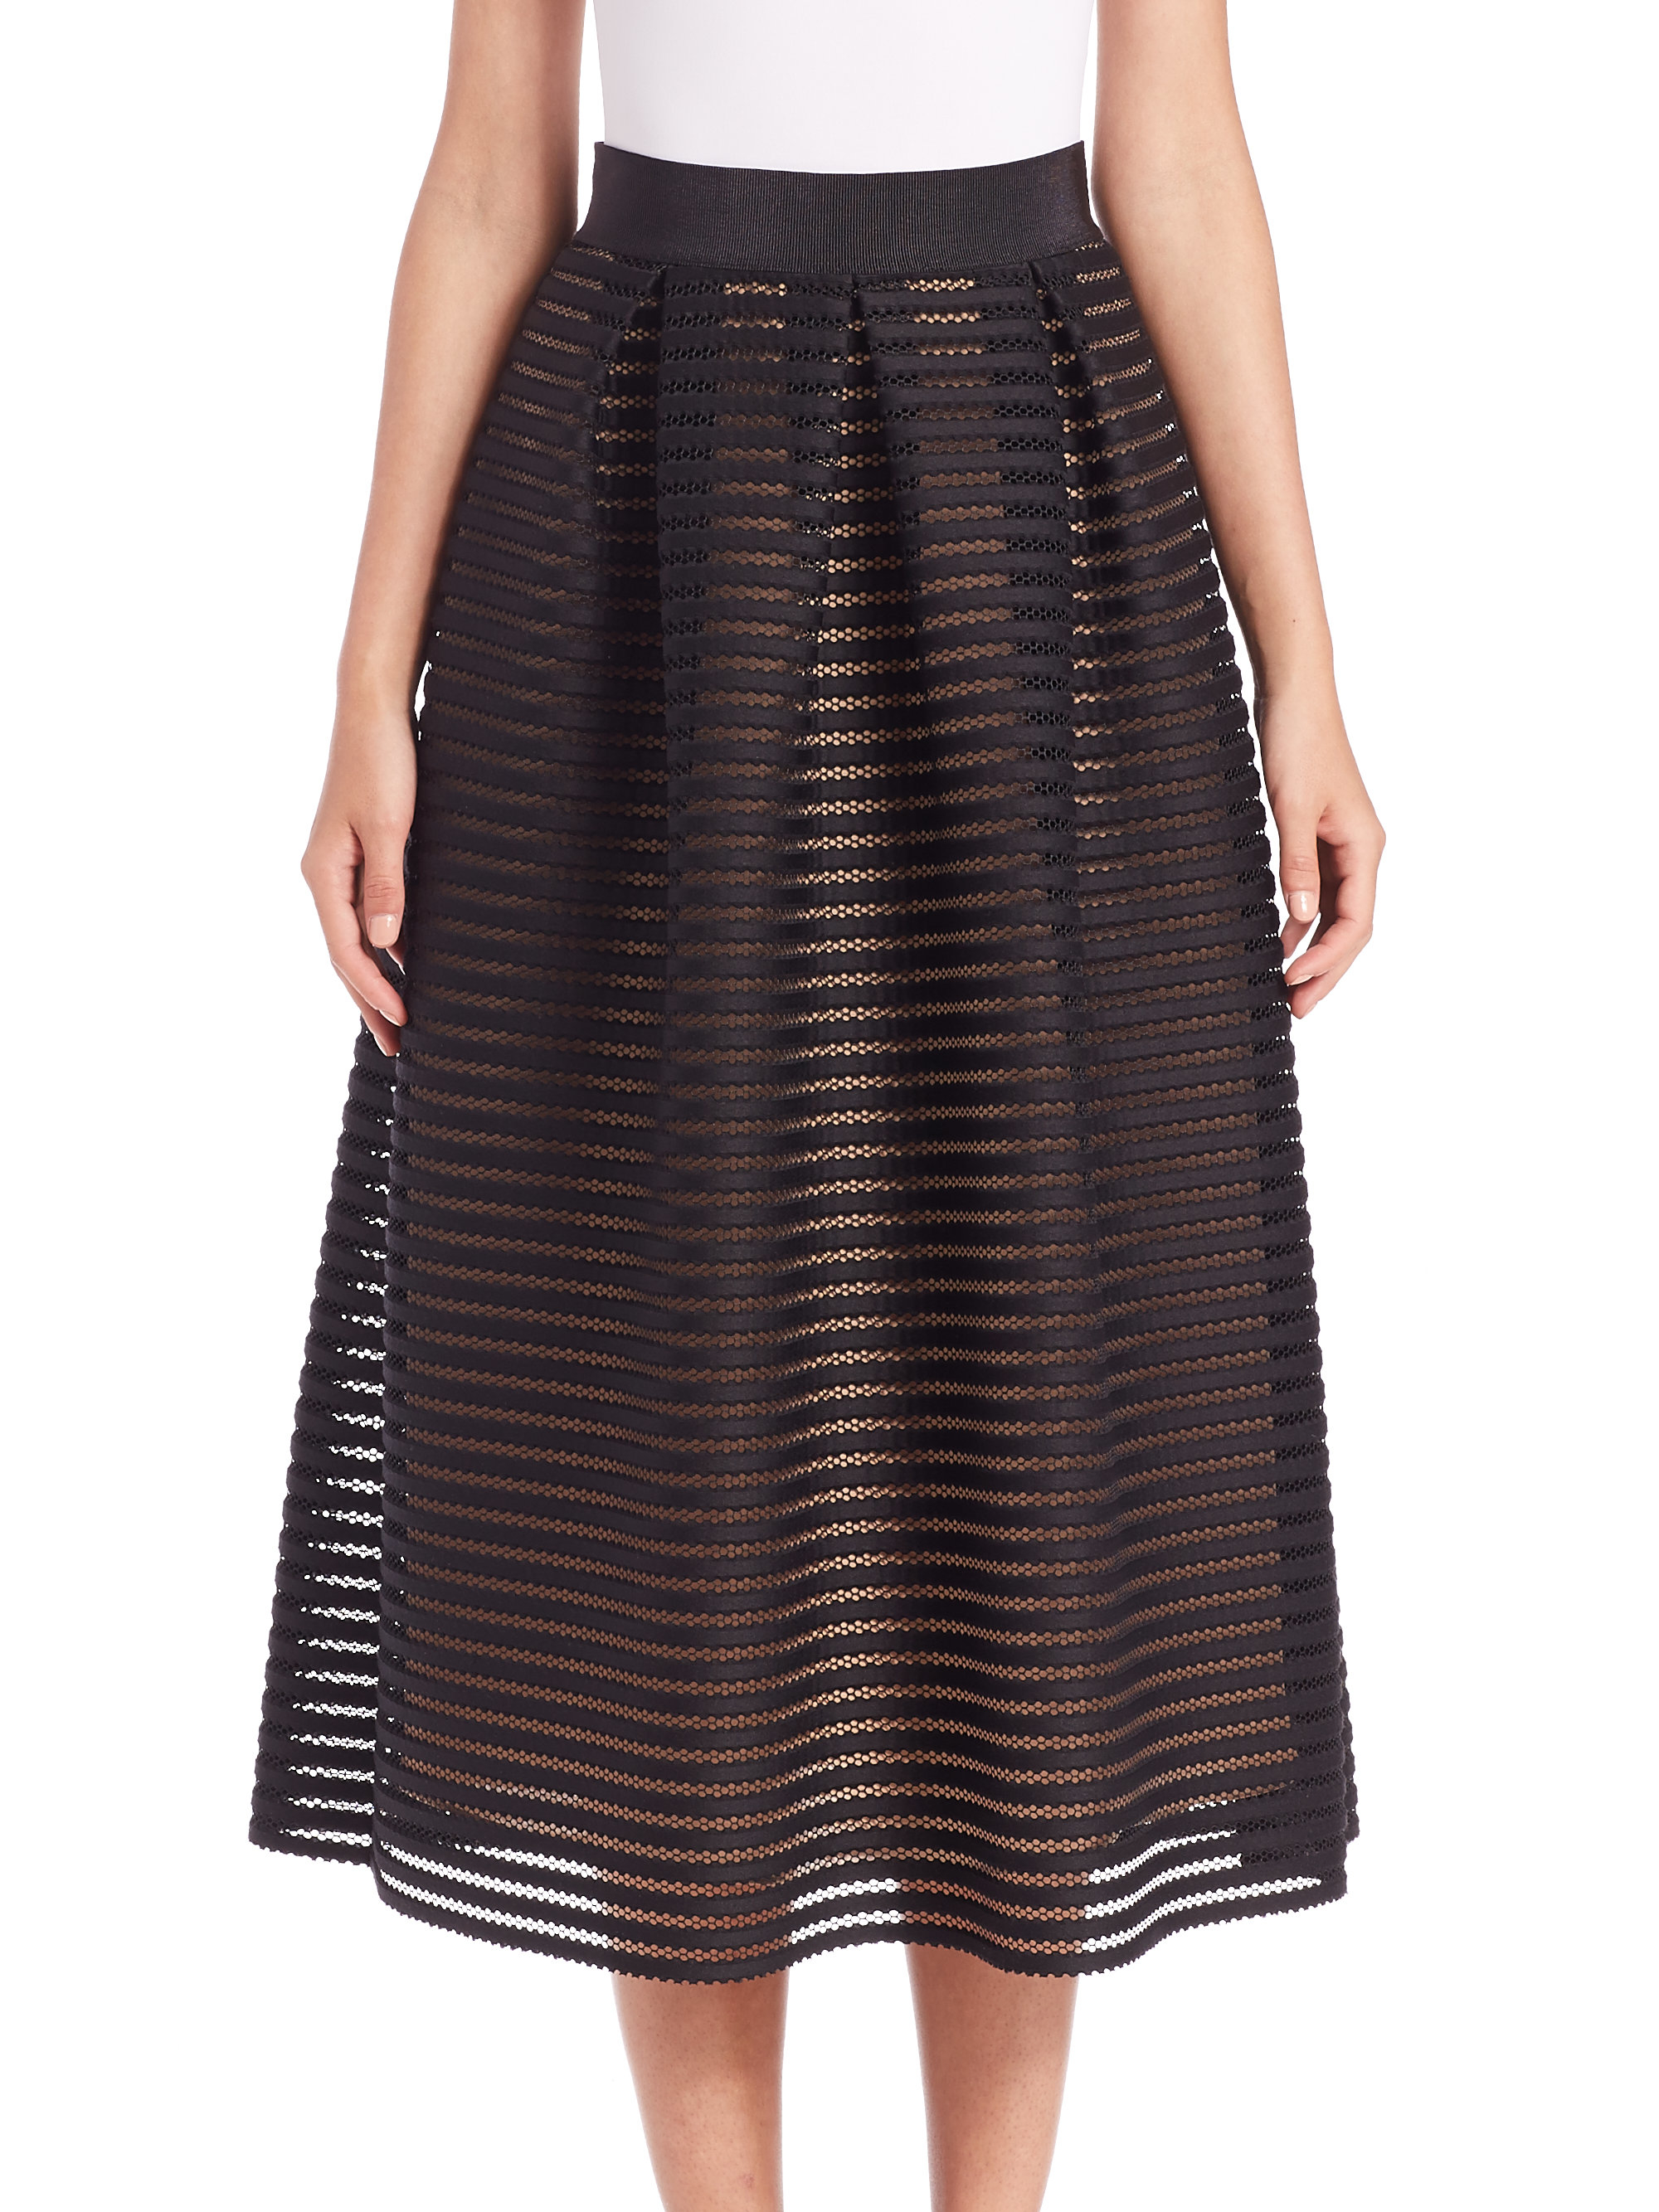 Abs by allen schwartz Striped Mesh Midi Skirt in Black | Lyst